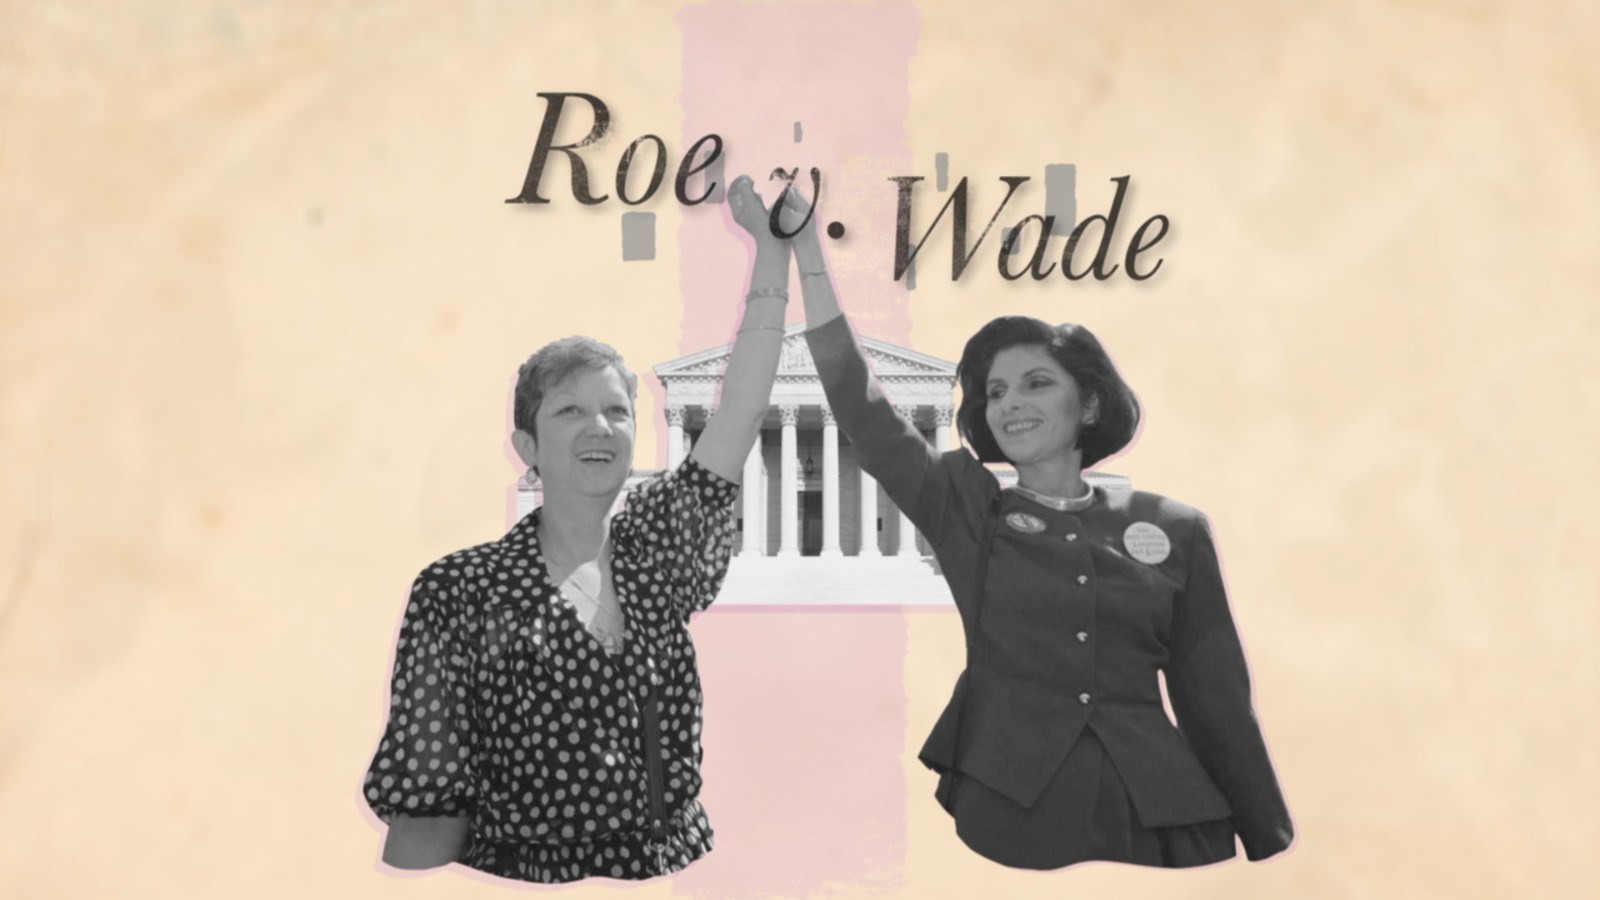 tbt: roe v. wade, one of the most controversial scotus cases